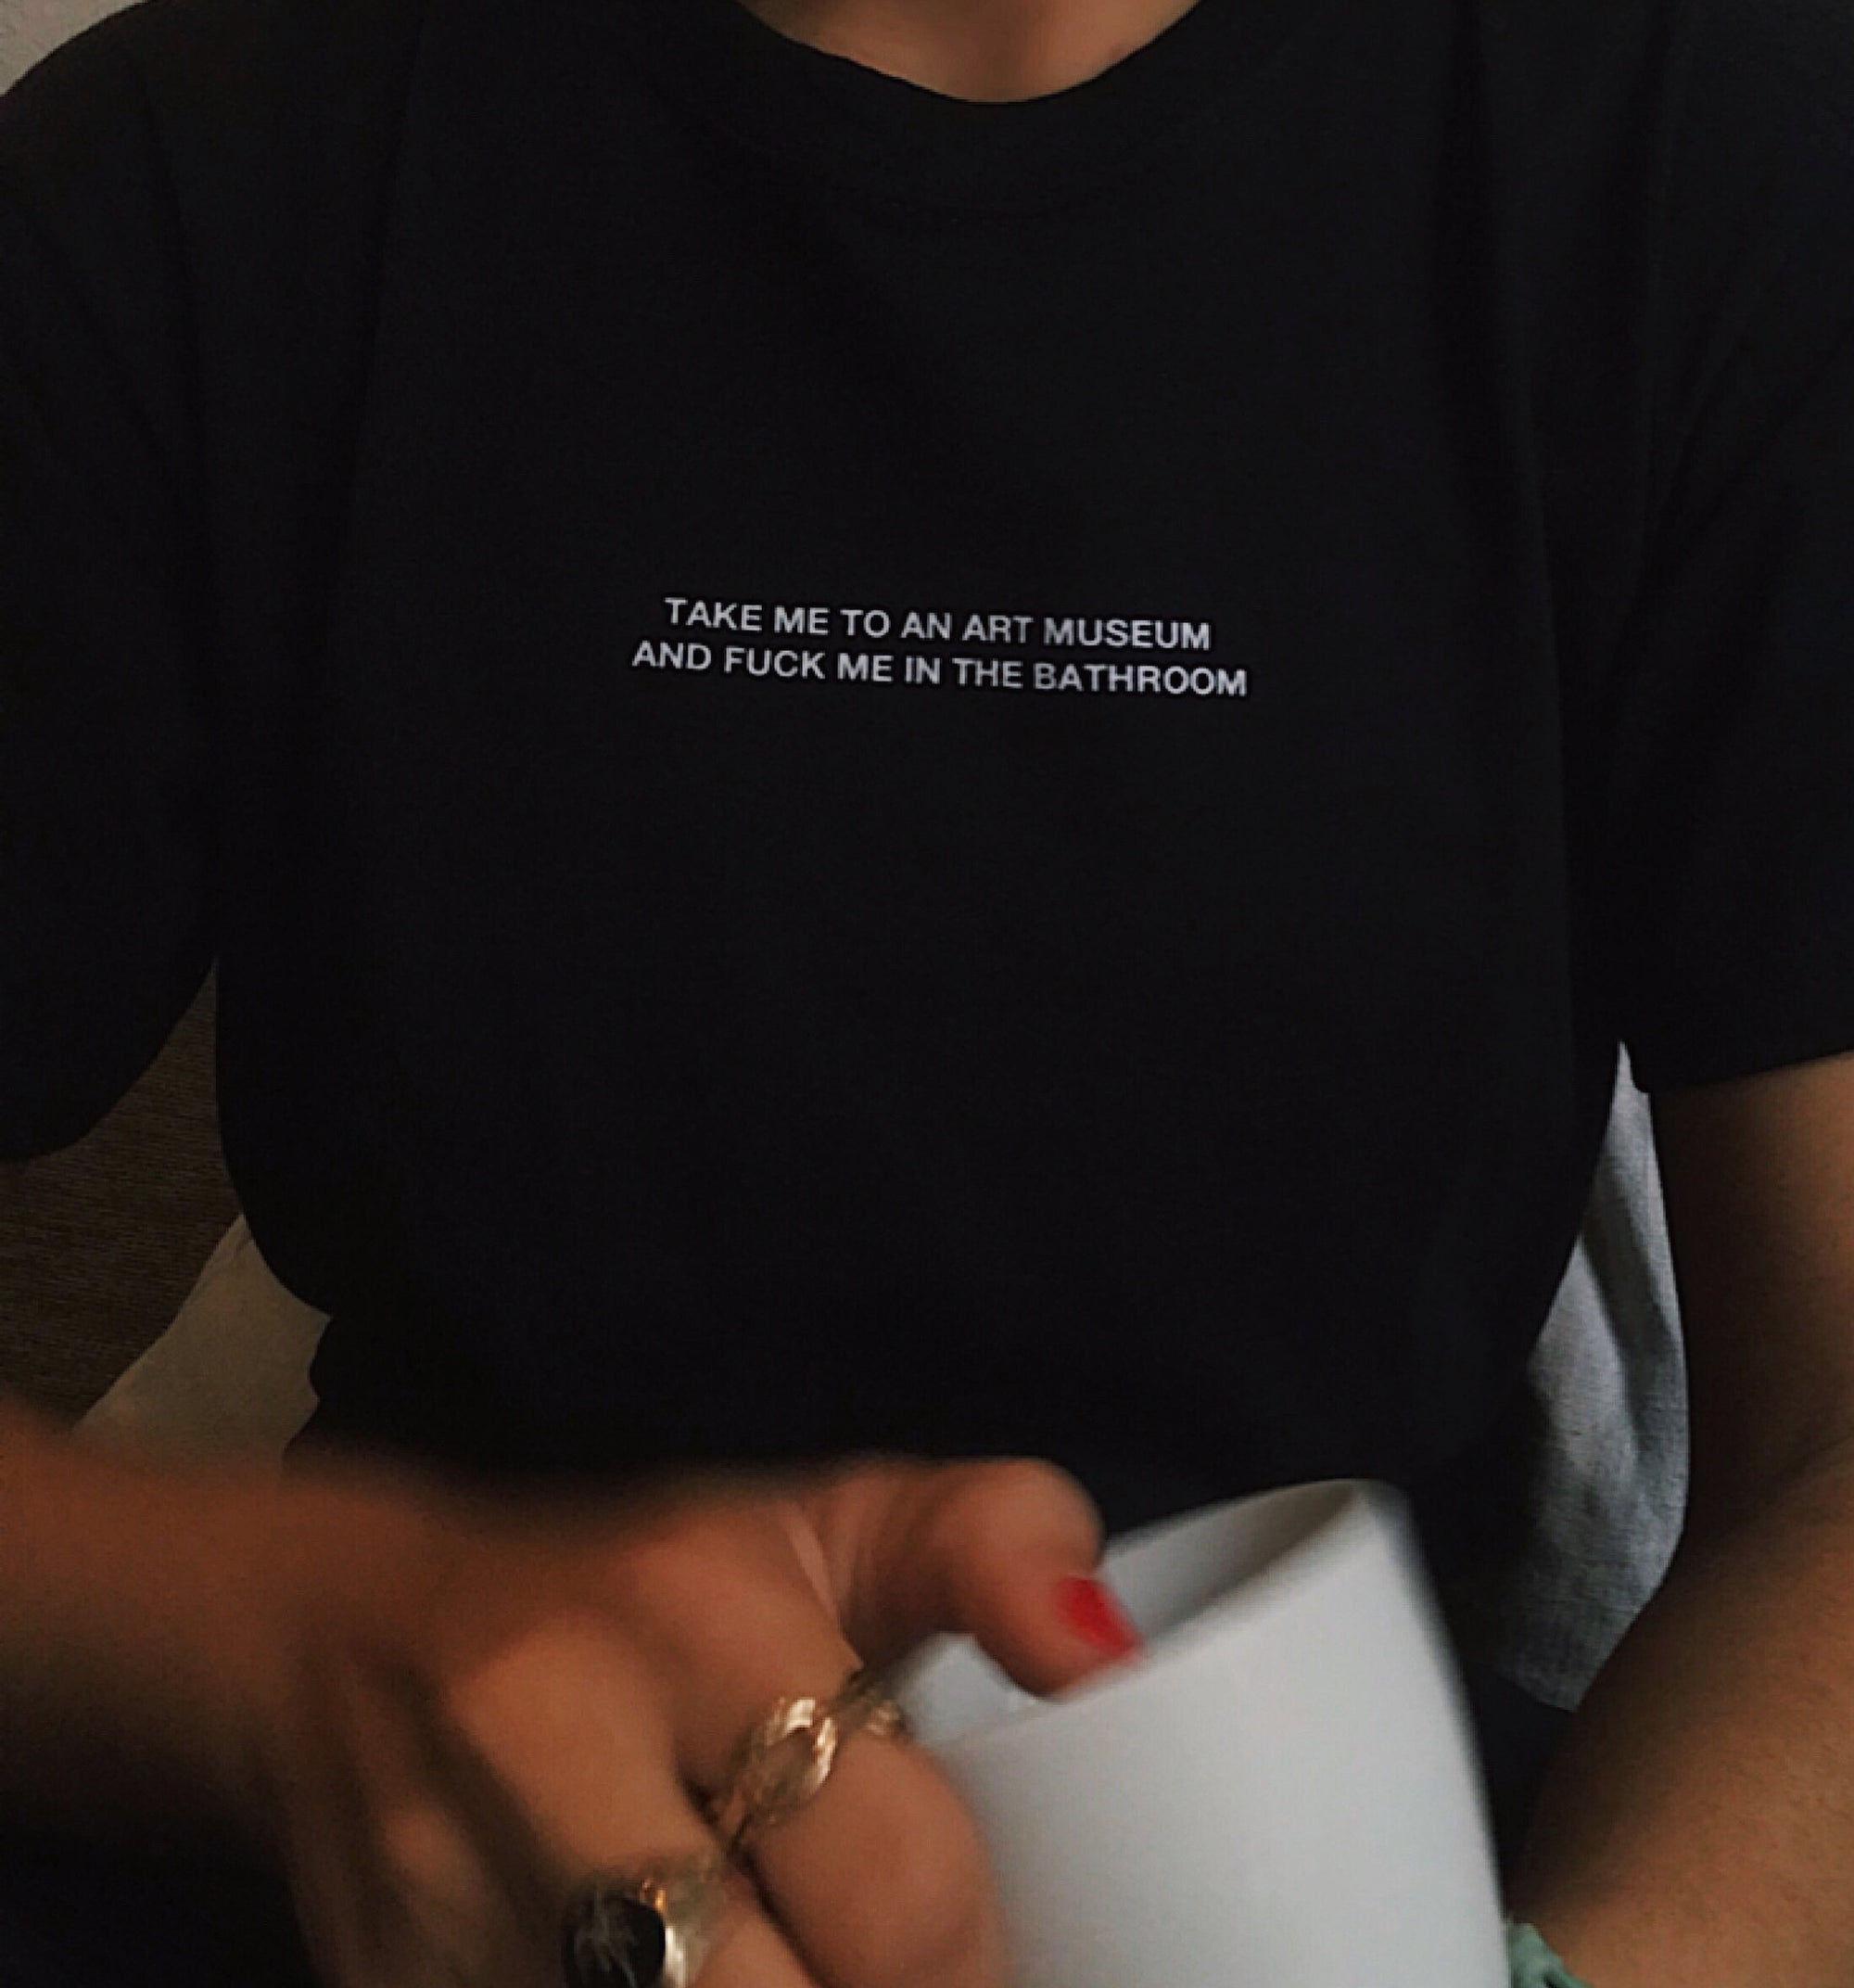 Image of Take me to the art museum T-shirt